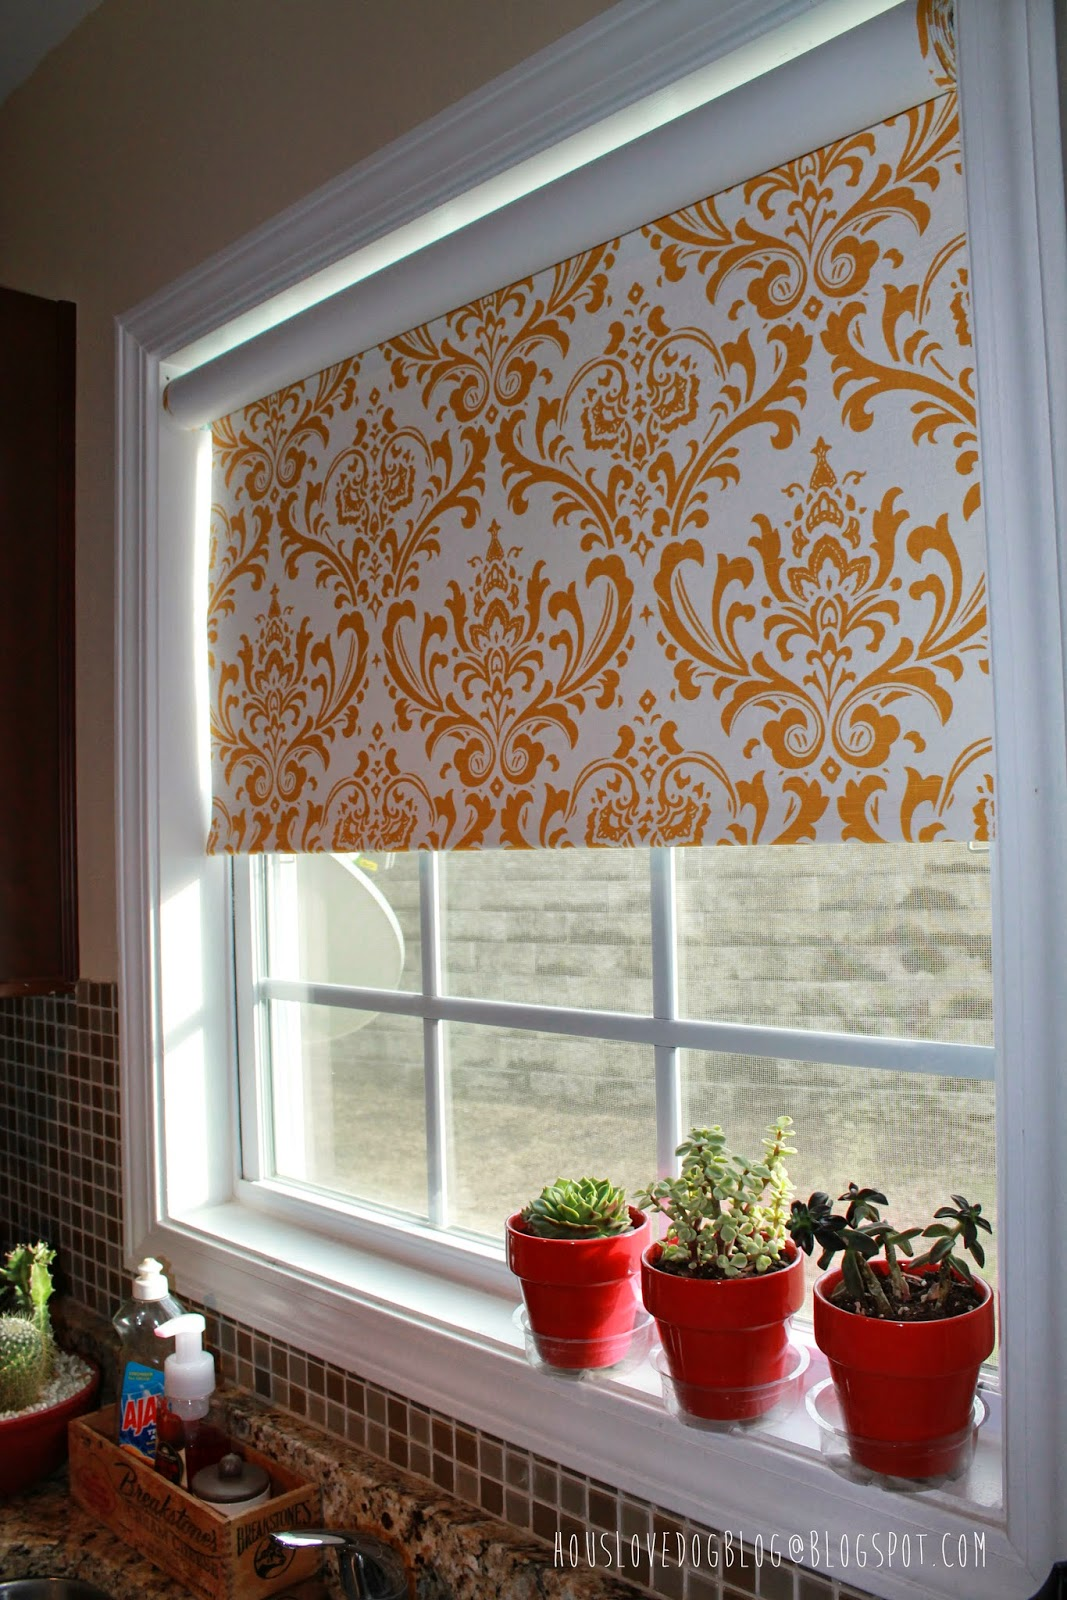 Fabric Roller Shades : Hous love dog ikea hack fabric covered tupplur blinds